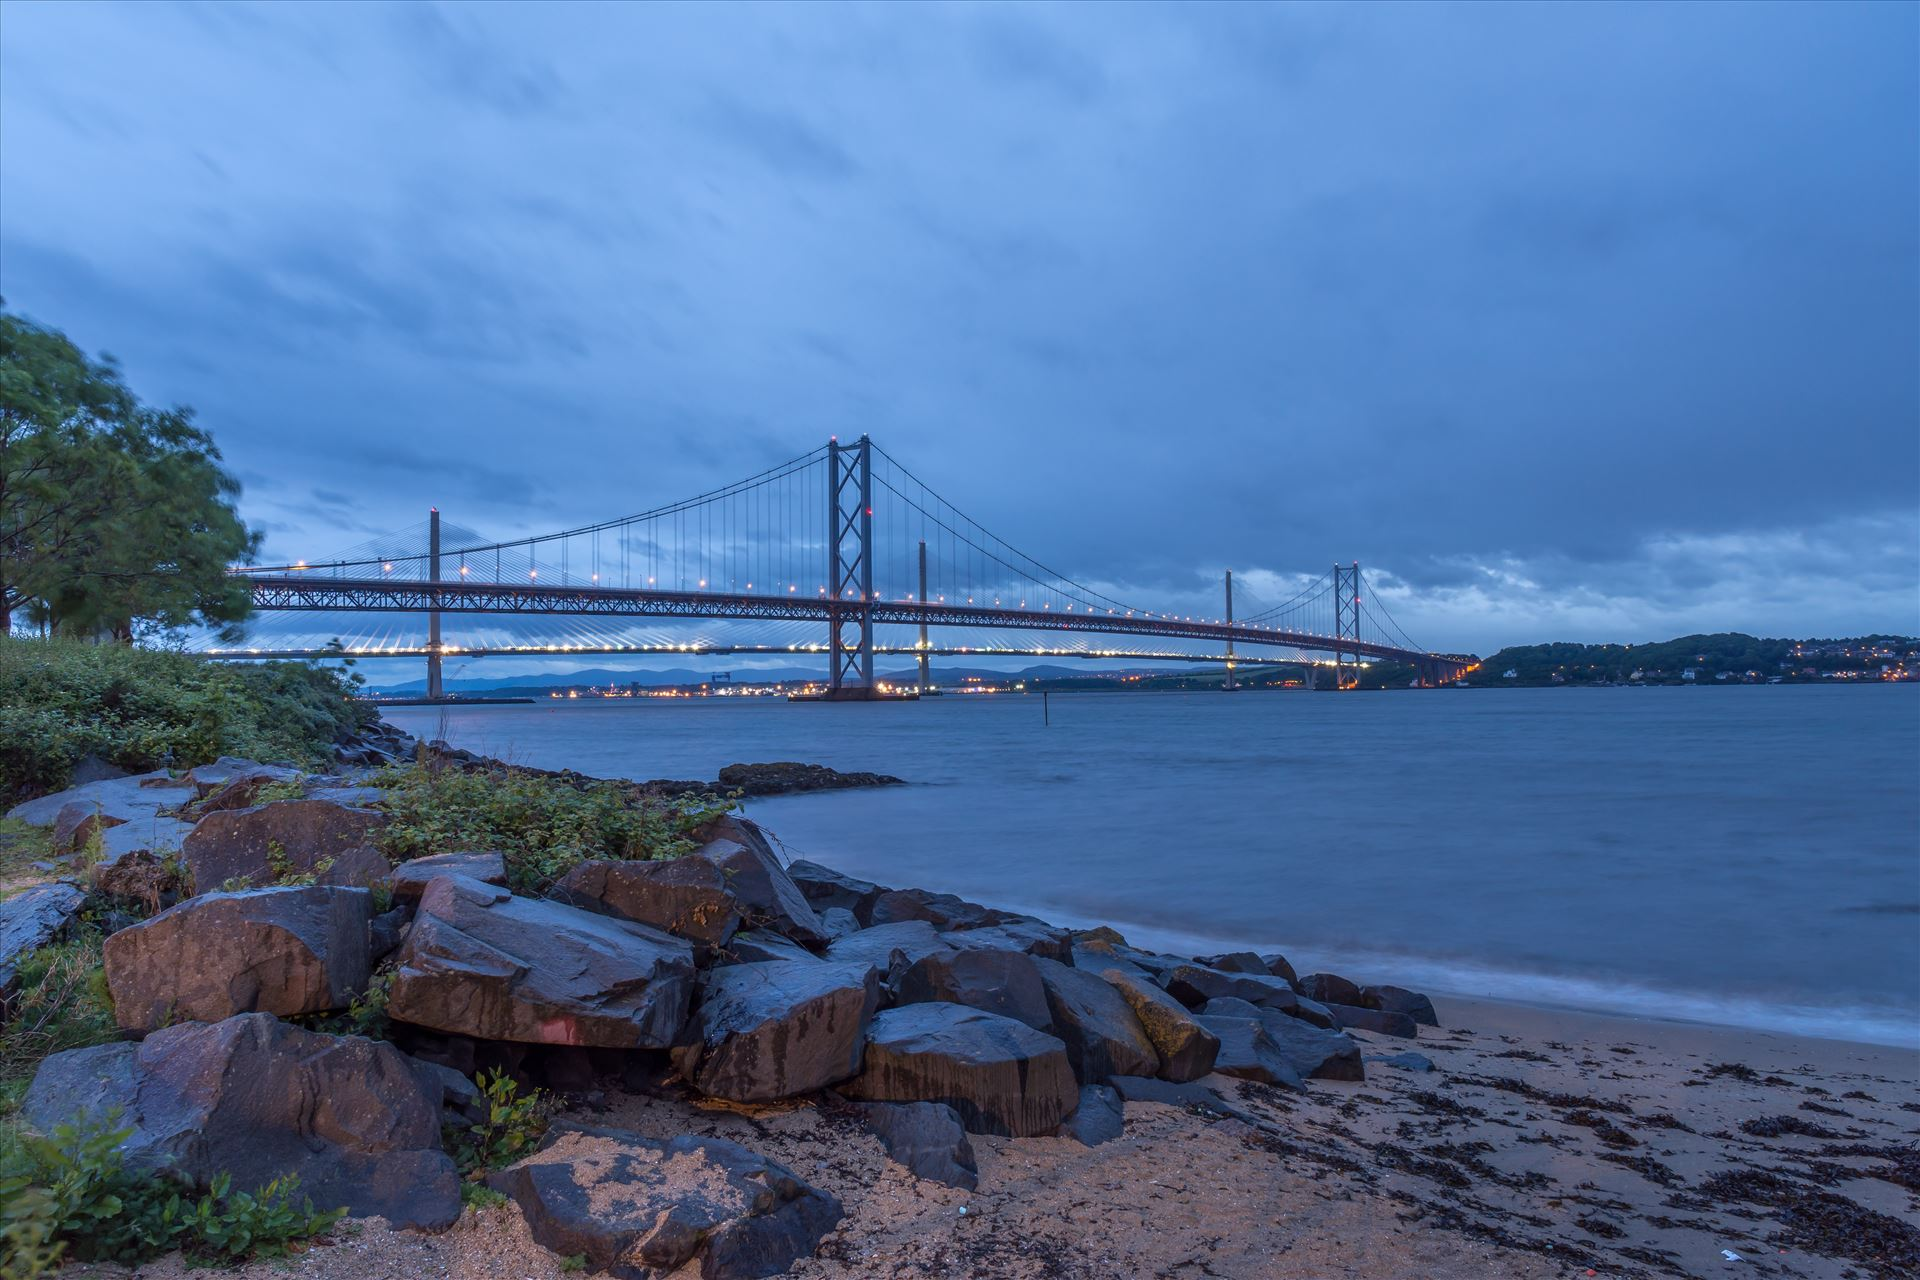 Forth road bridges Shown here is the existing Forth road bridge & behind is the new bridge which opened on 30th August 2017 at a cost of £1.35bn. by philreay